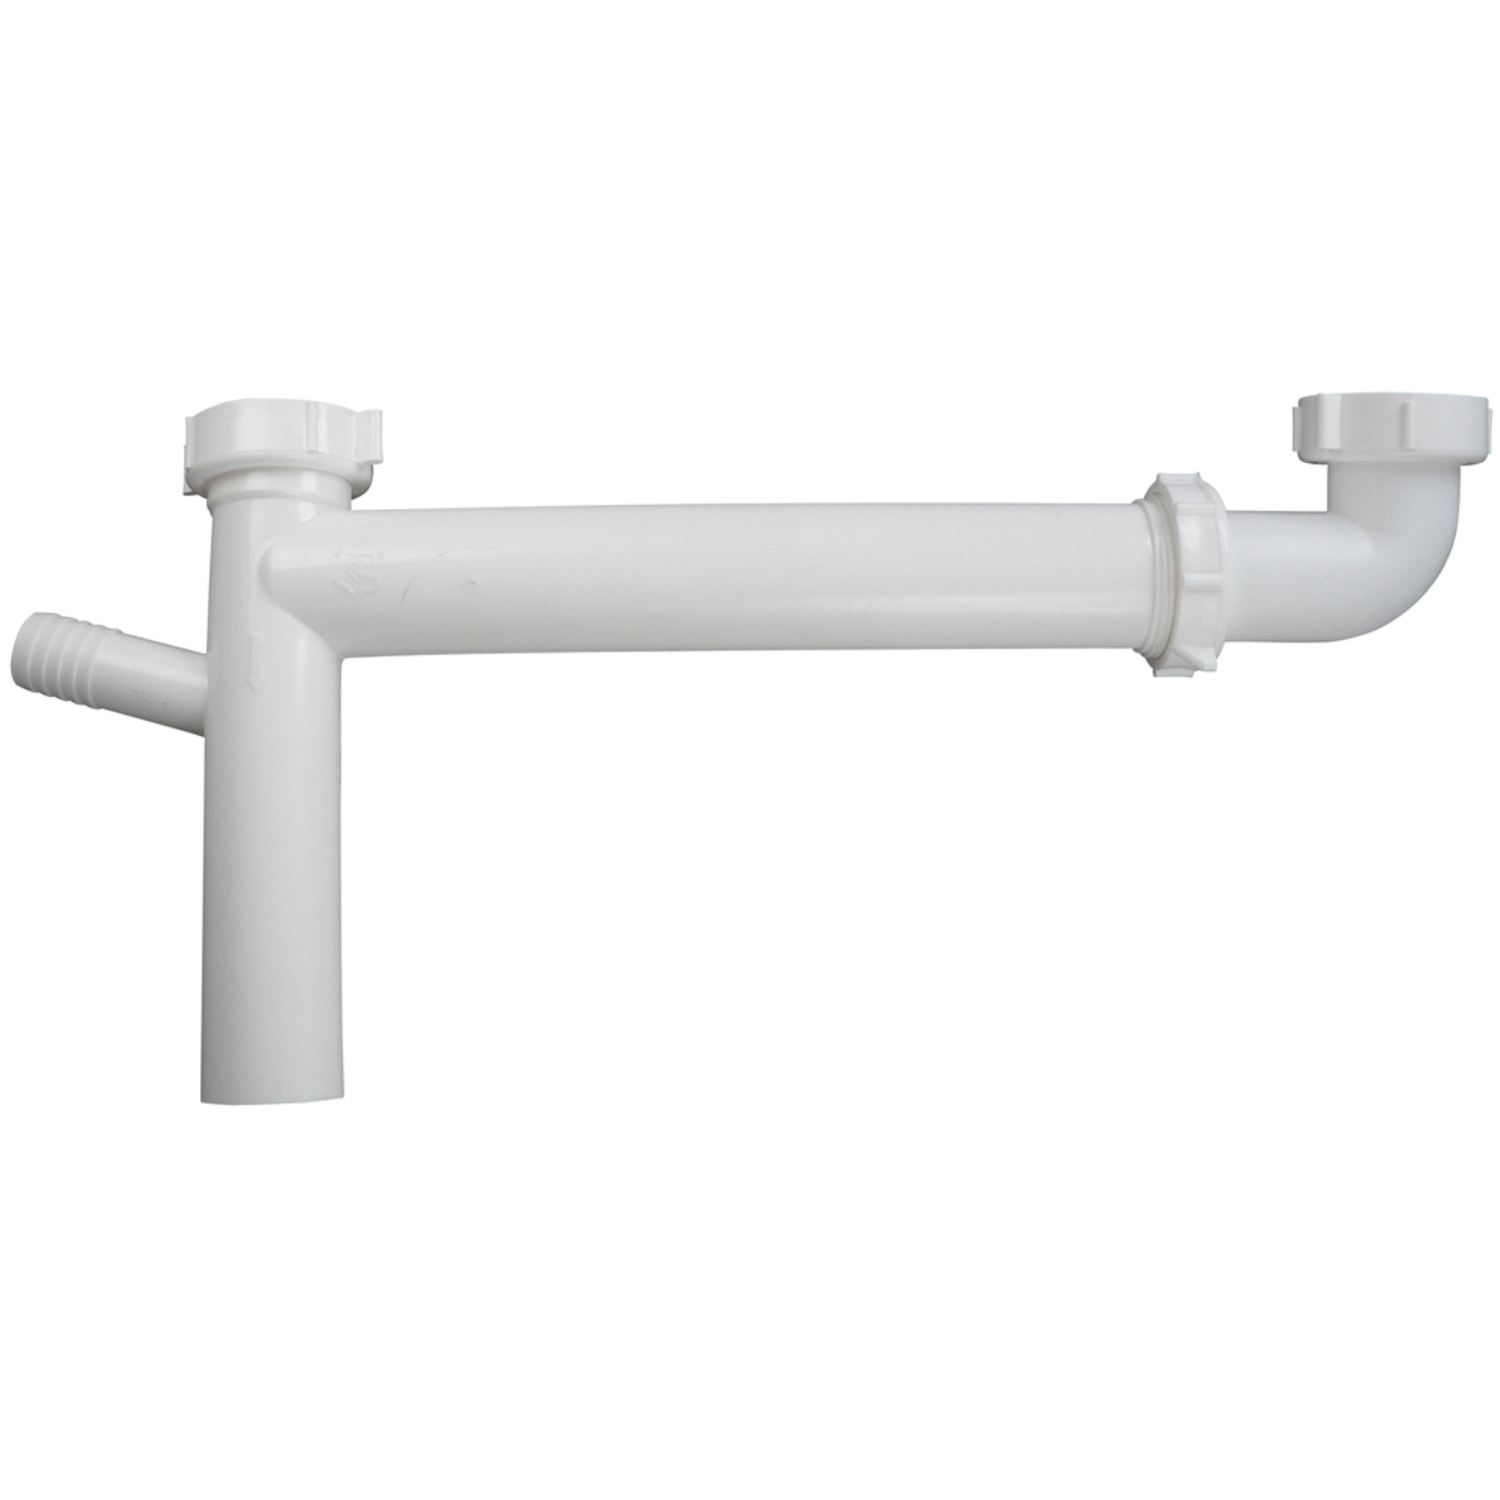 Keeney  1-1/2 in. Slip   x 1-1/2 in. Dia. Slip  Plastic  Waste Arm